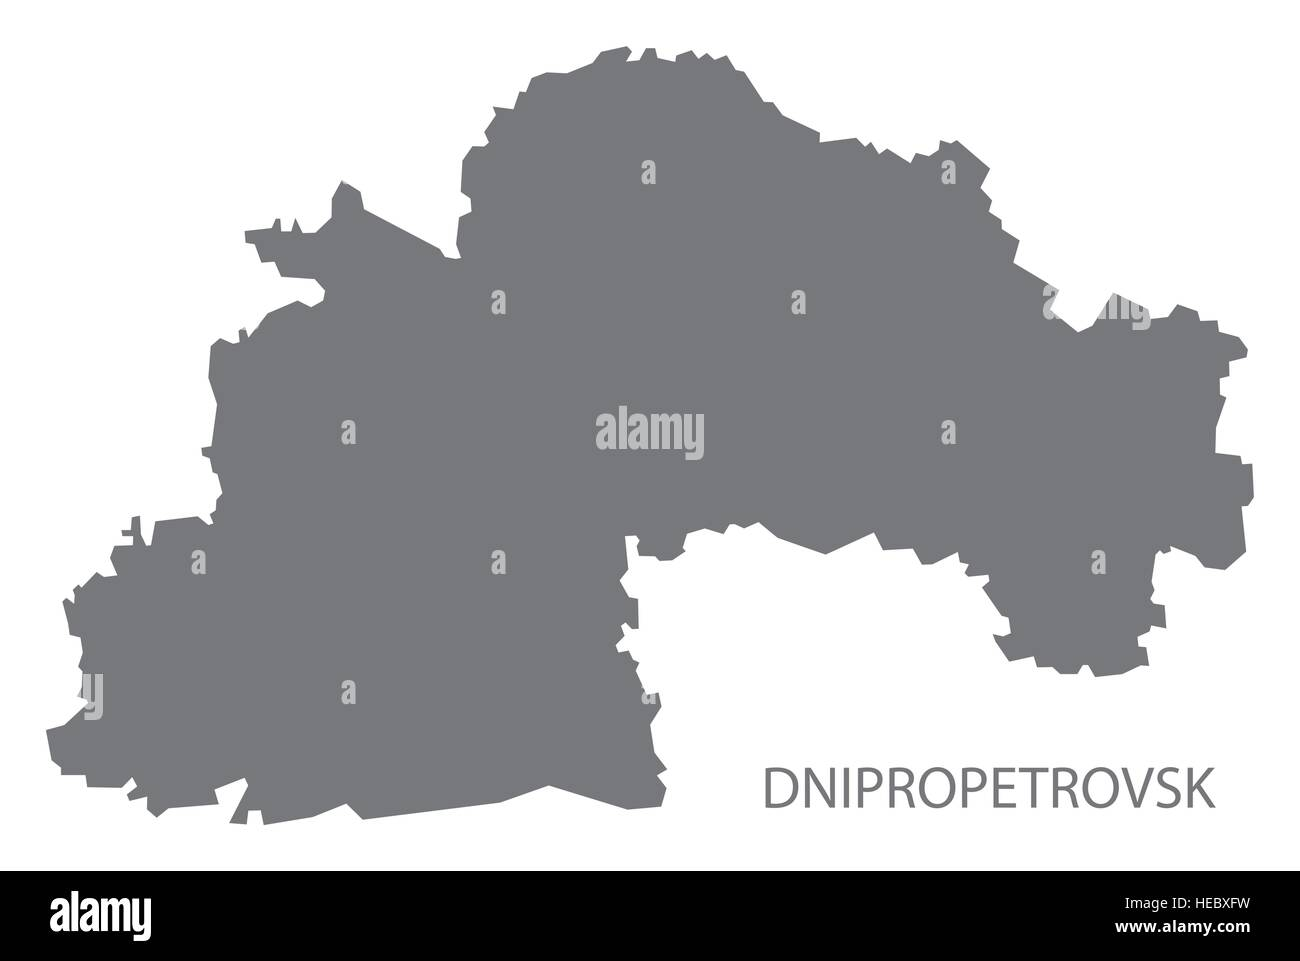 Dnipropetrovsk Ukraine Map grey Stock Vector Art Illustration